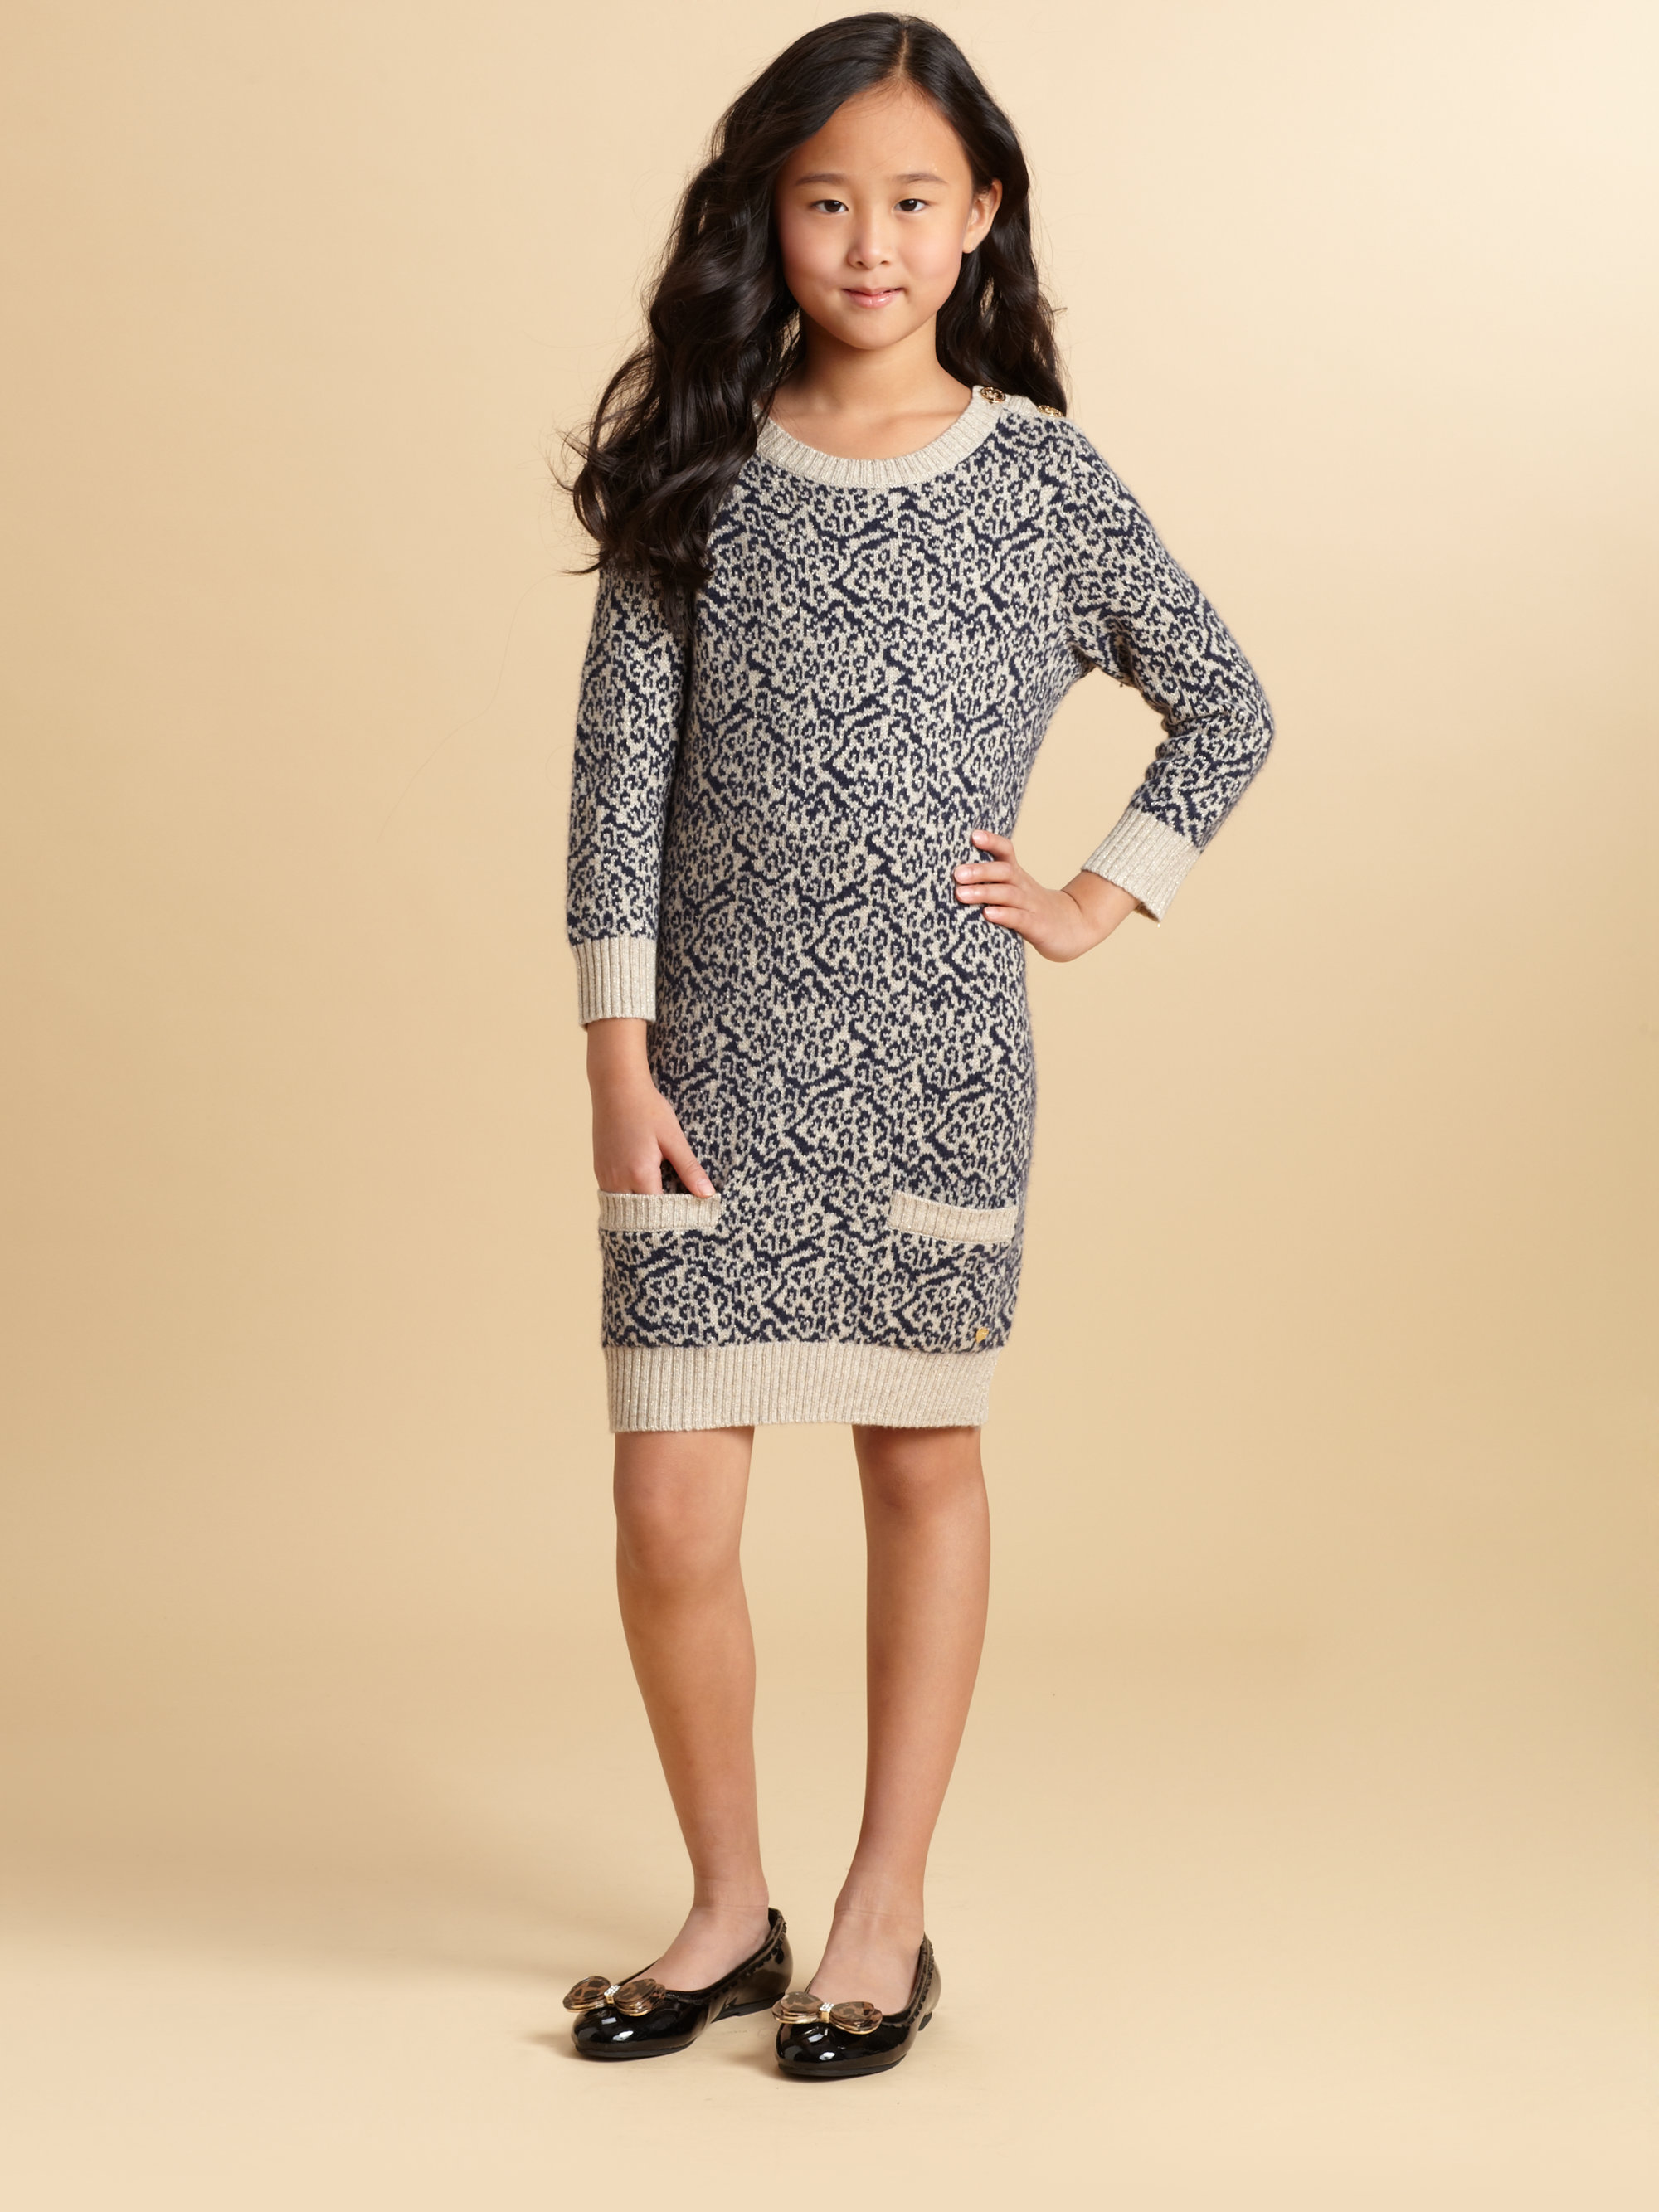 Lyst juicy couture girls snow leopard sweater dress in gray for Couture clothing